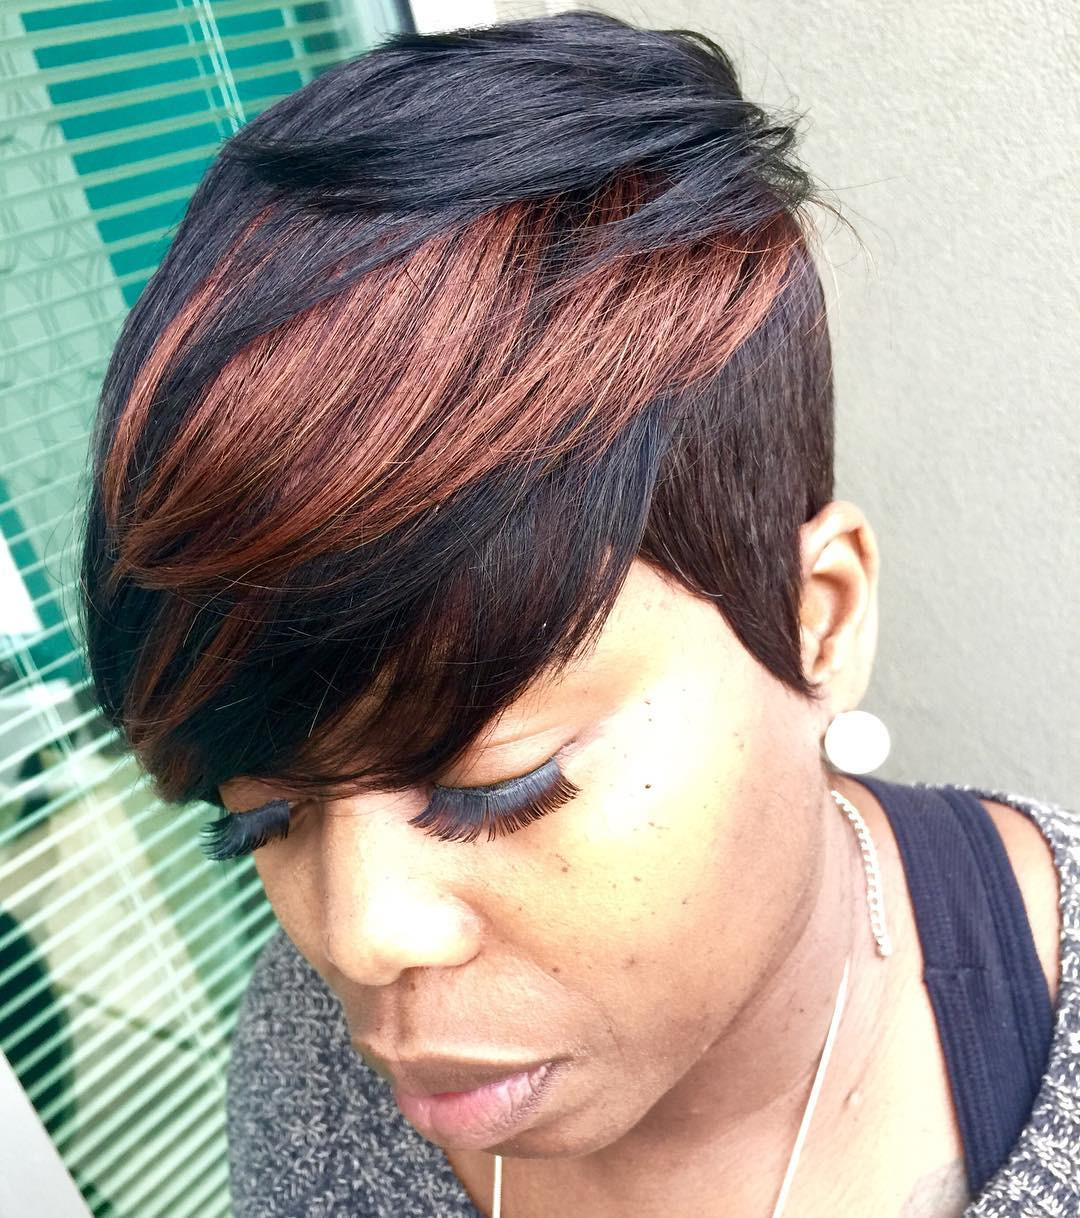 Best ideas about Quick Weave Hairstyles For Black Women . Save or Pin 16 Quick Weave Hairstyles for Seriously Posh Women Now.